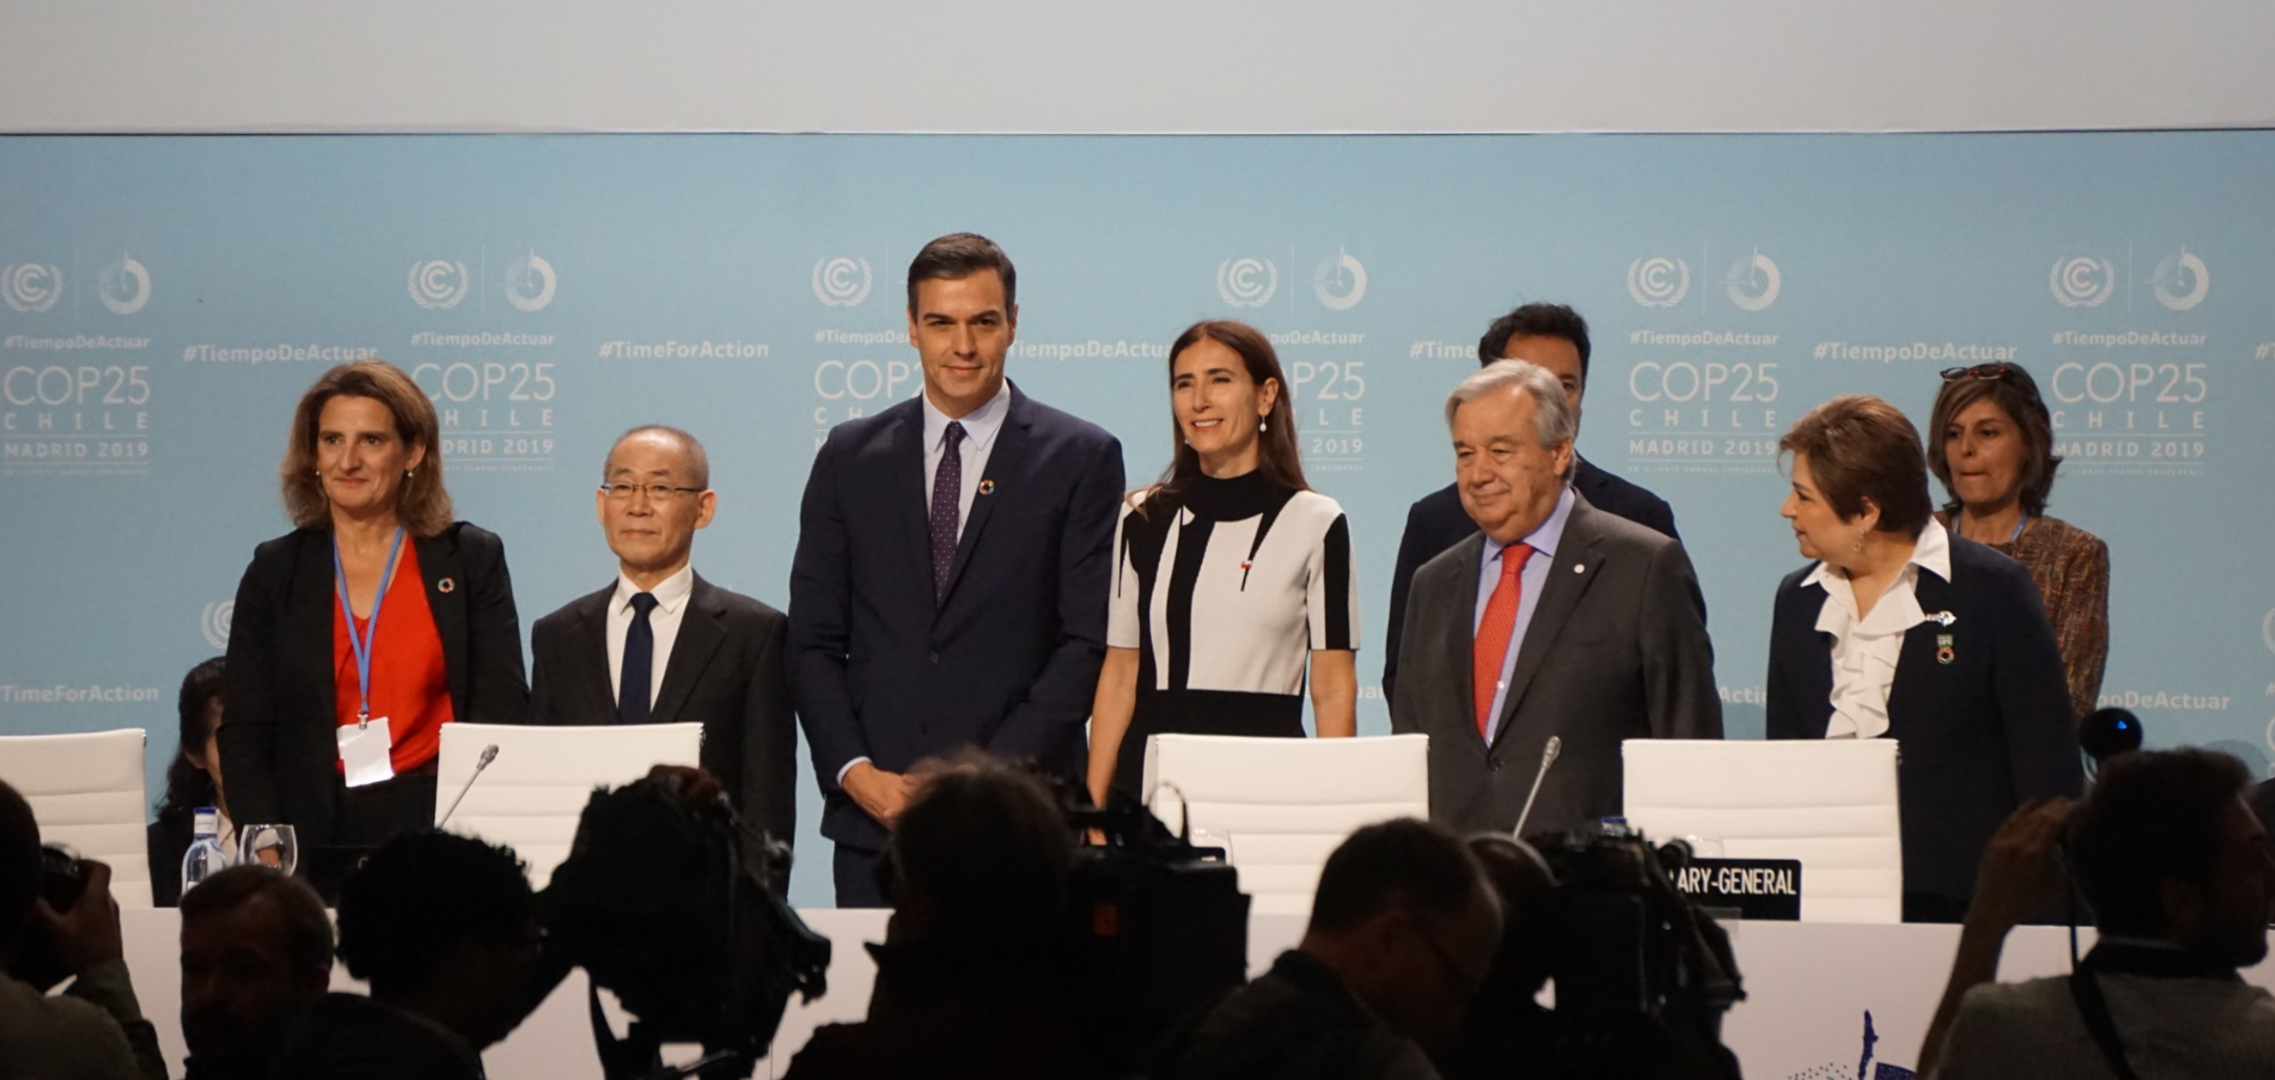 COP25 Madrid – Opening Ceremony